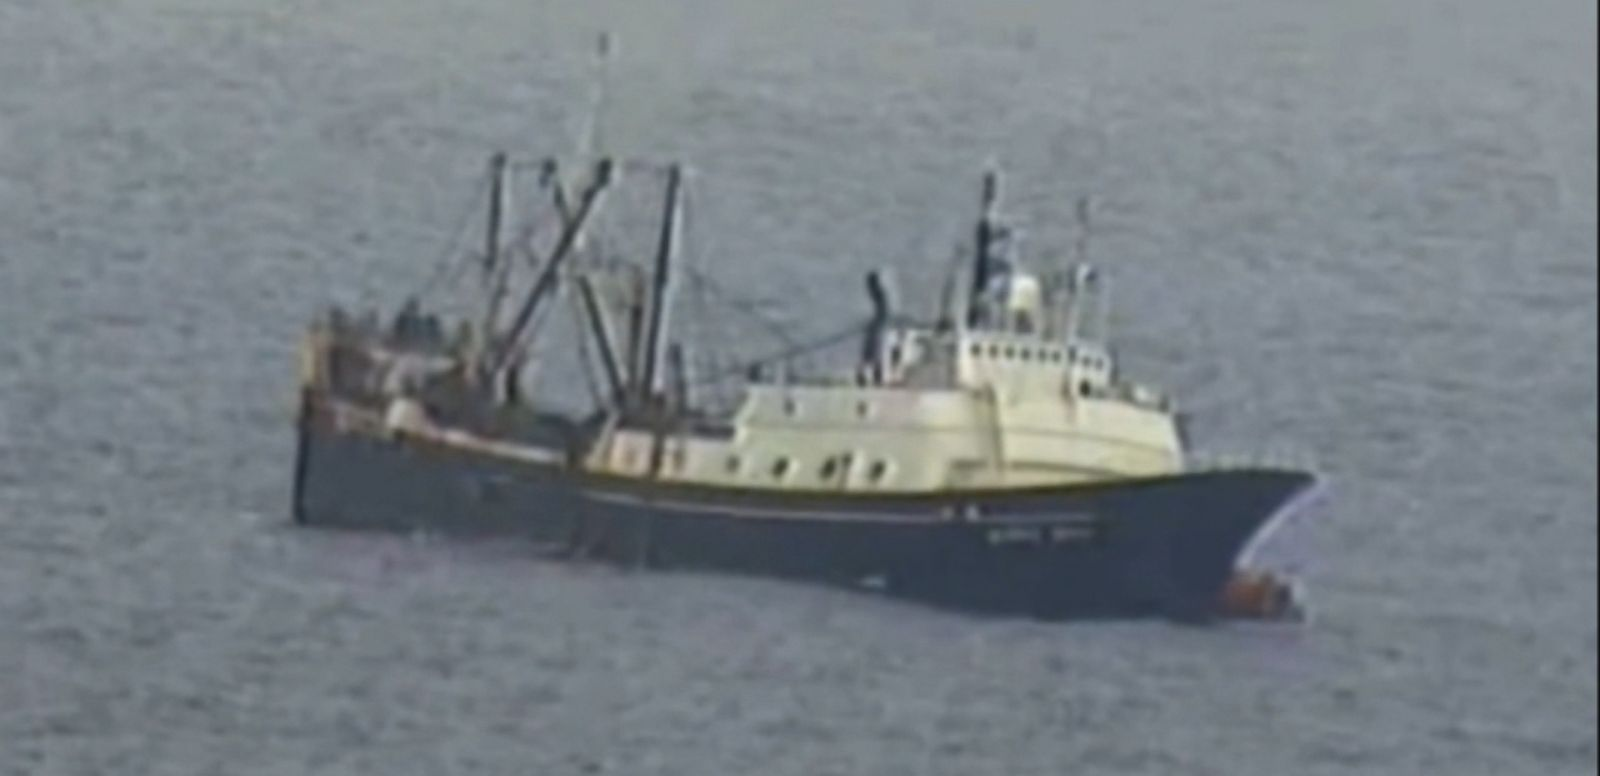 VIDEO: The U.S. Coast Guard released video this morning of the rescue of several dozen crew members from a capsizing fishing vessel located almost 700 miles from Alaskan shores.